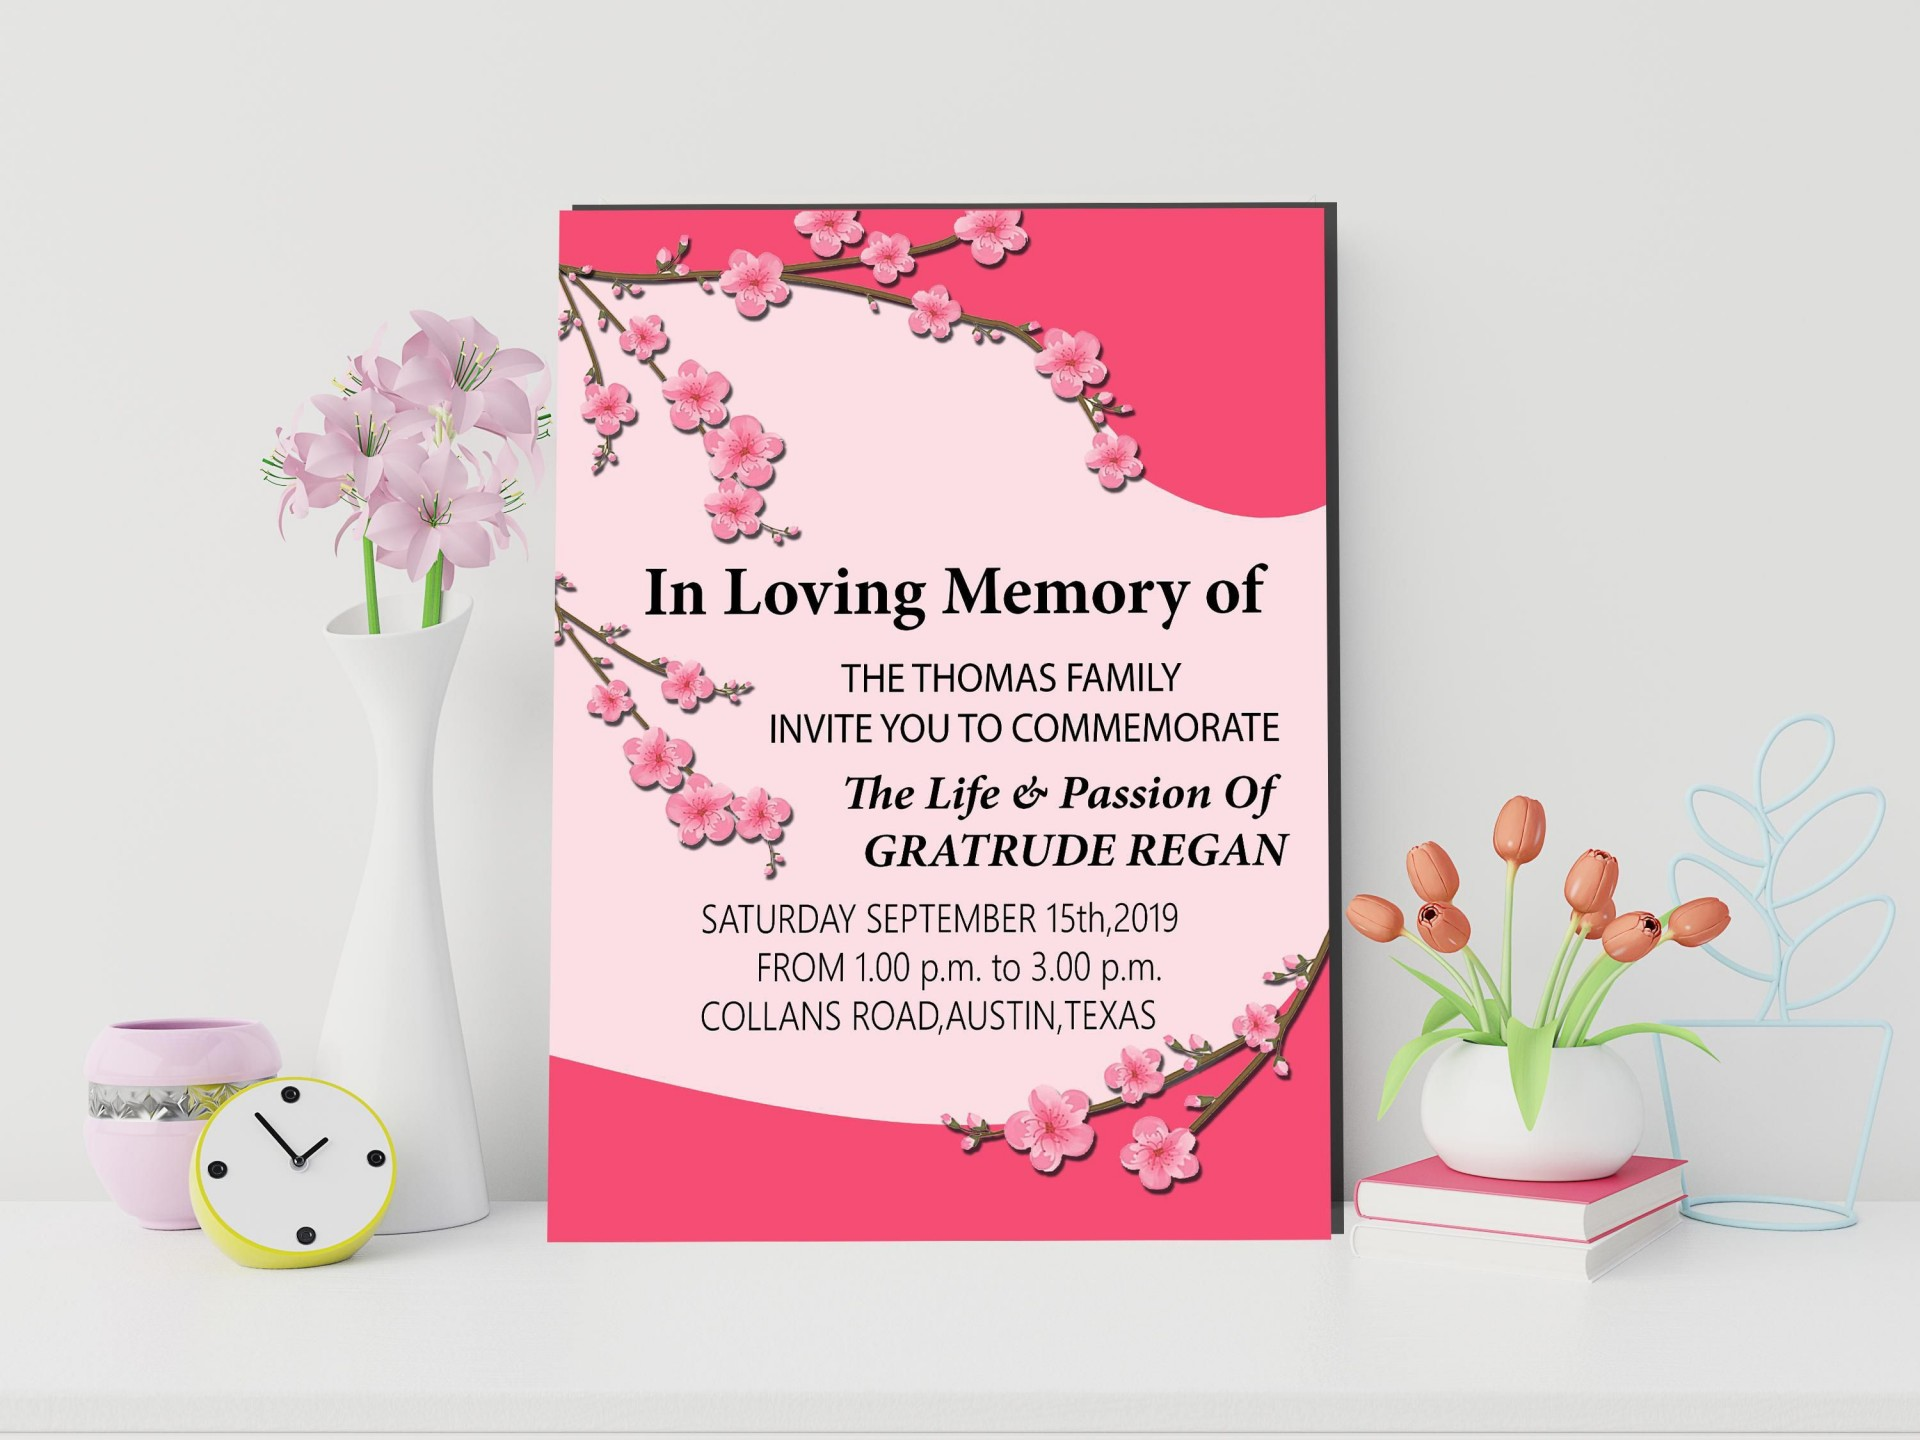 018 Remarkable Funeral Invitation Template Free Inspiration  Memorial Service Card Reception1920